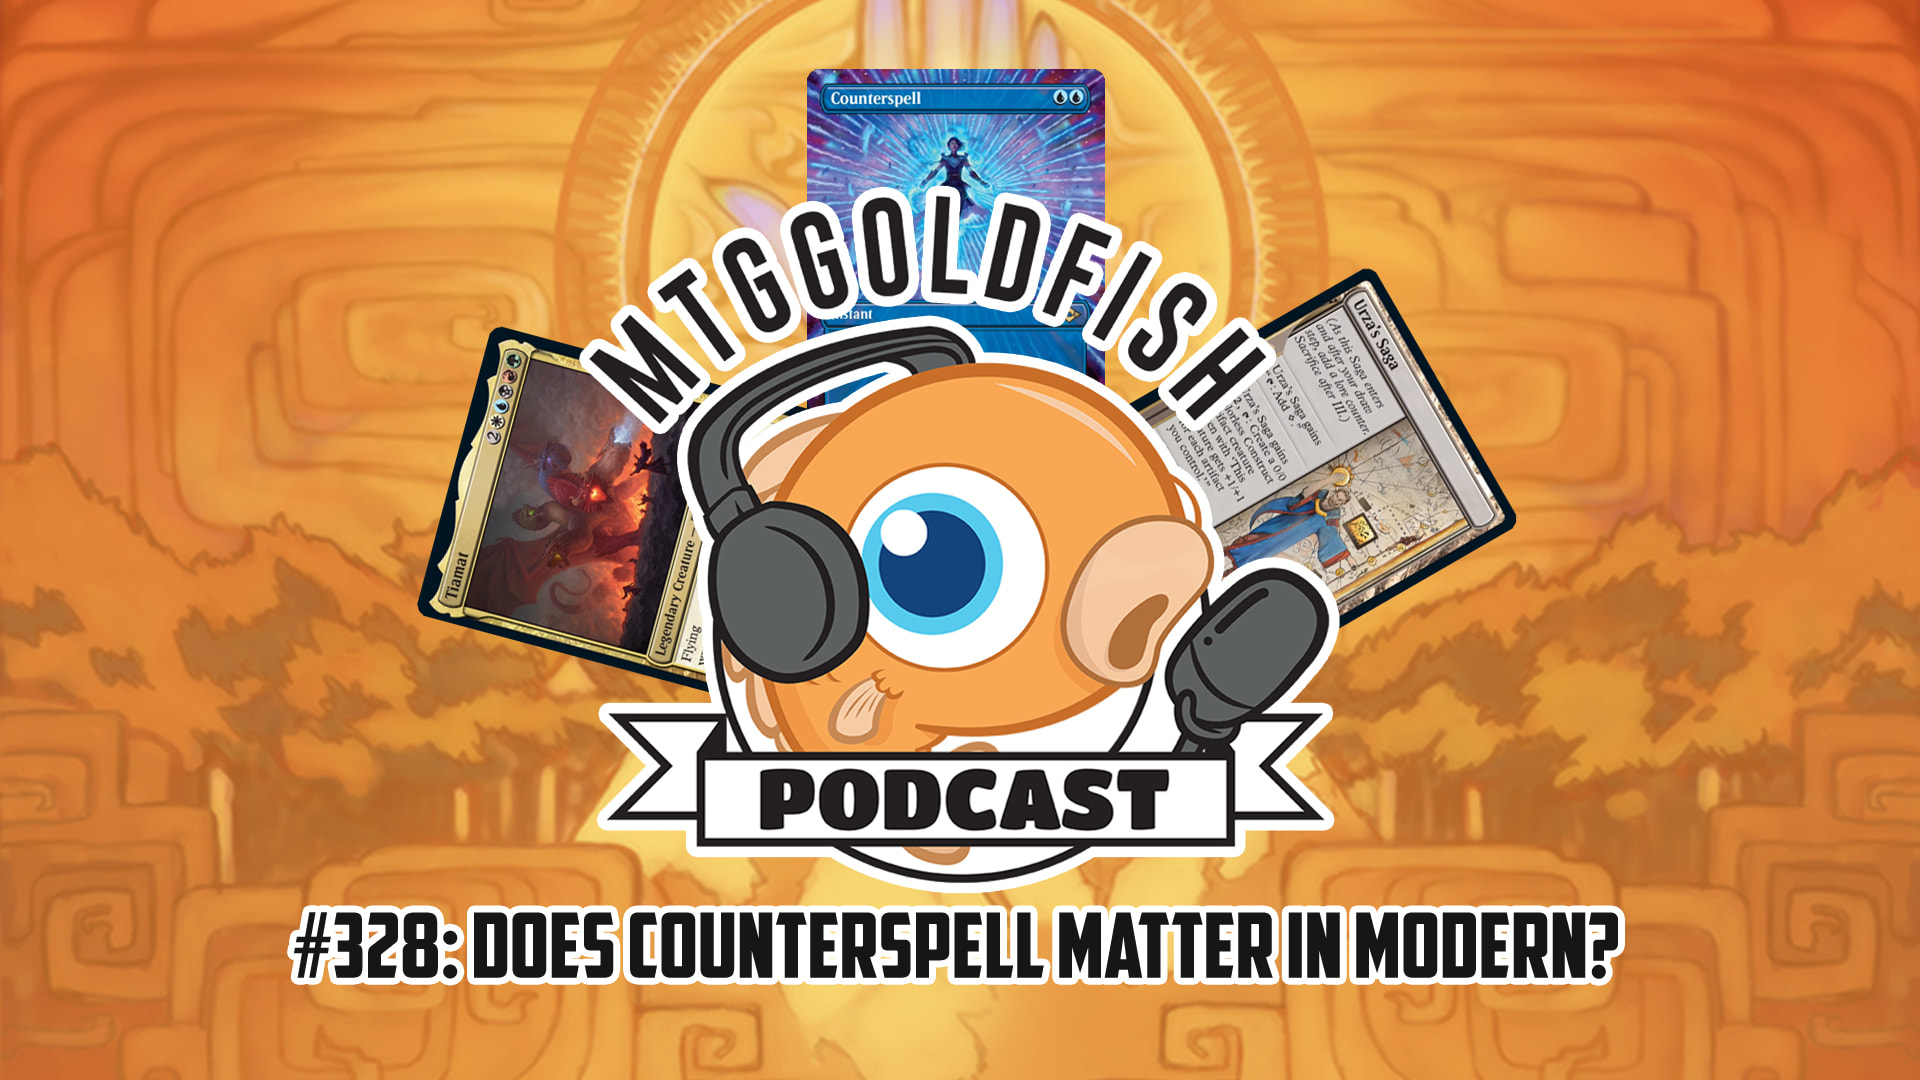 Image for Podcast 328: Does Counterspell Matter in Modern?